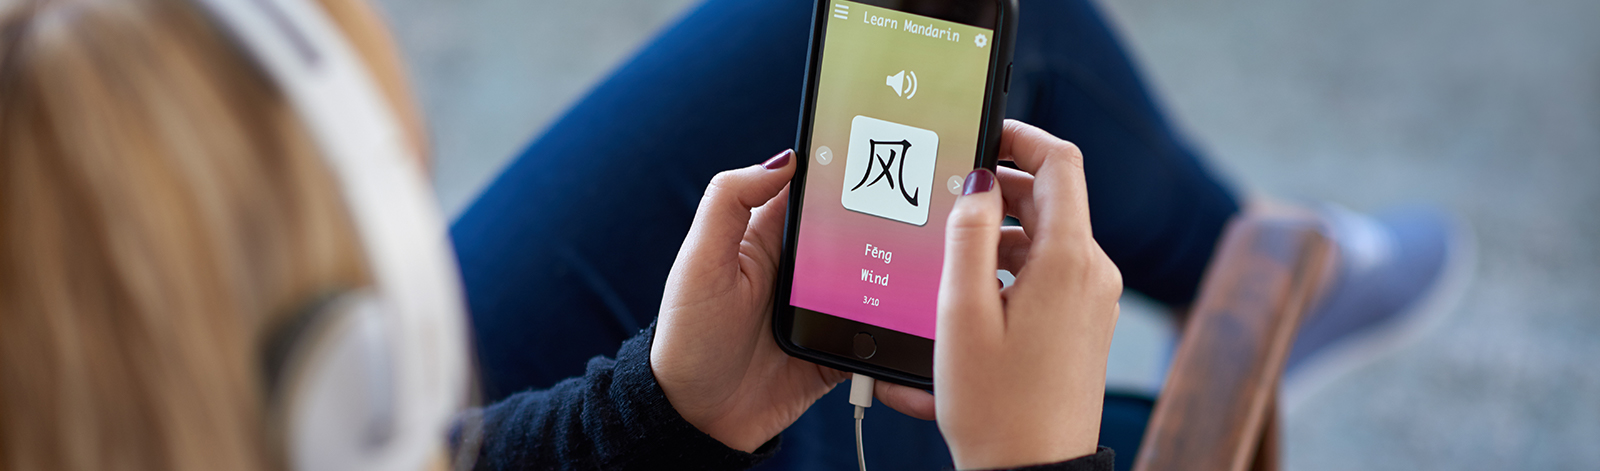 Woman using learning language app on smartphone